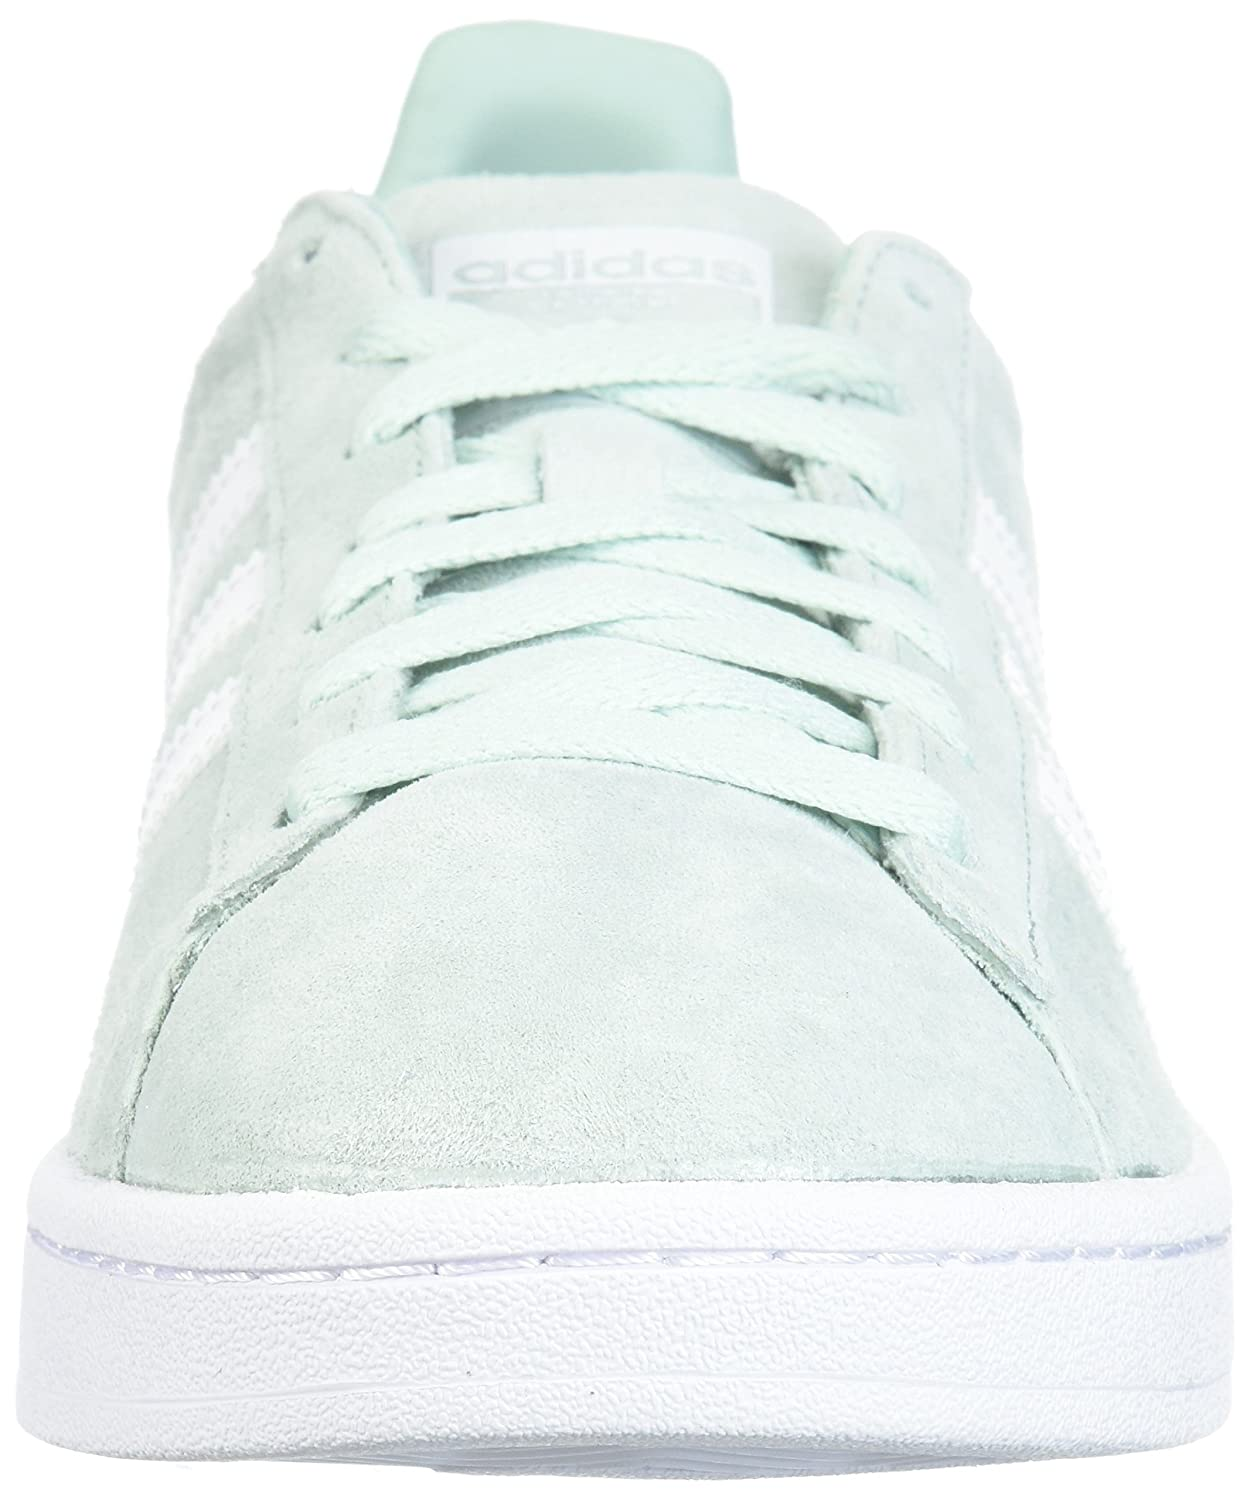 Adidas-Campus-Men-039-s-Casual-Fashion-Sneakers-Retro-Athletic-Shoes thumbnail 3